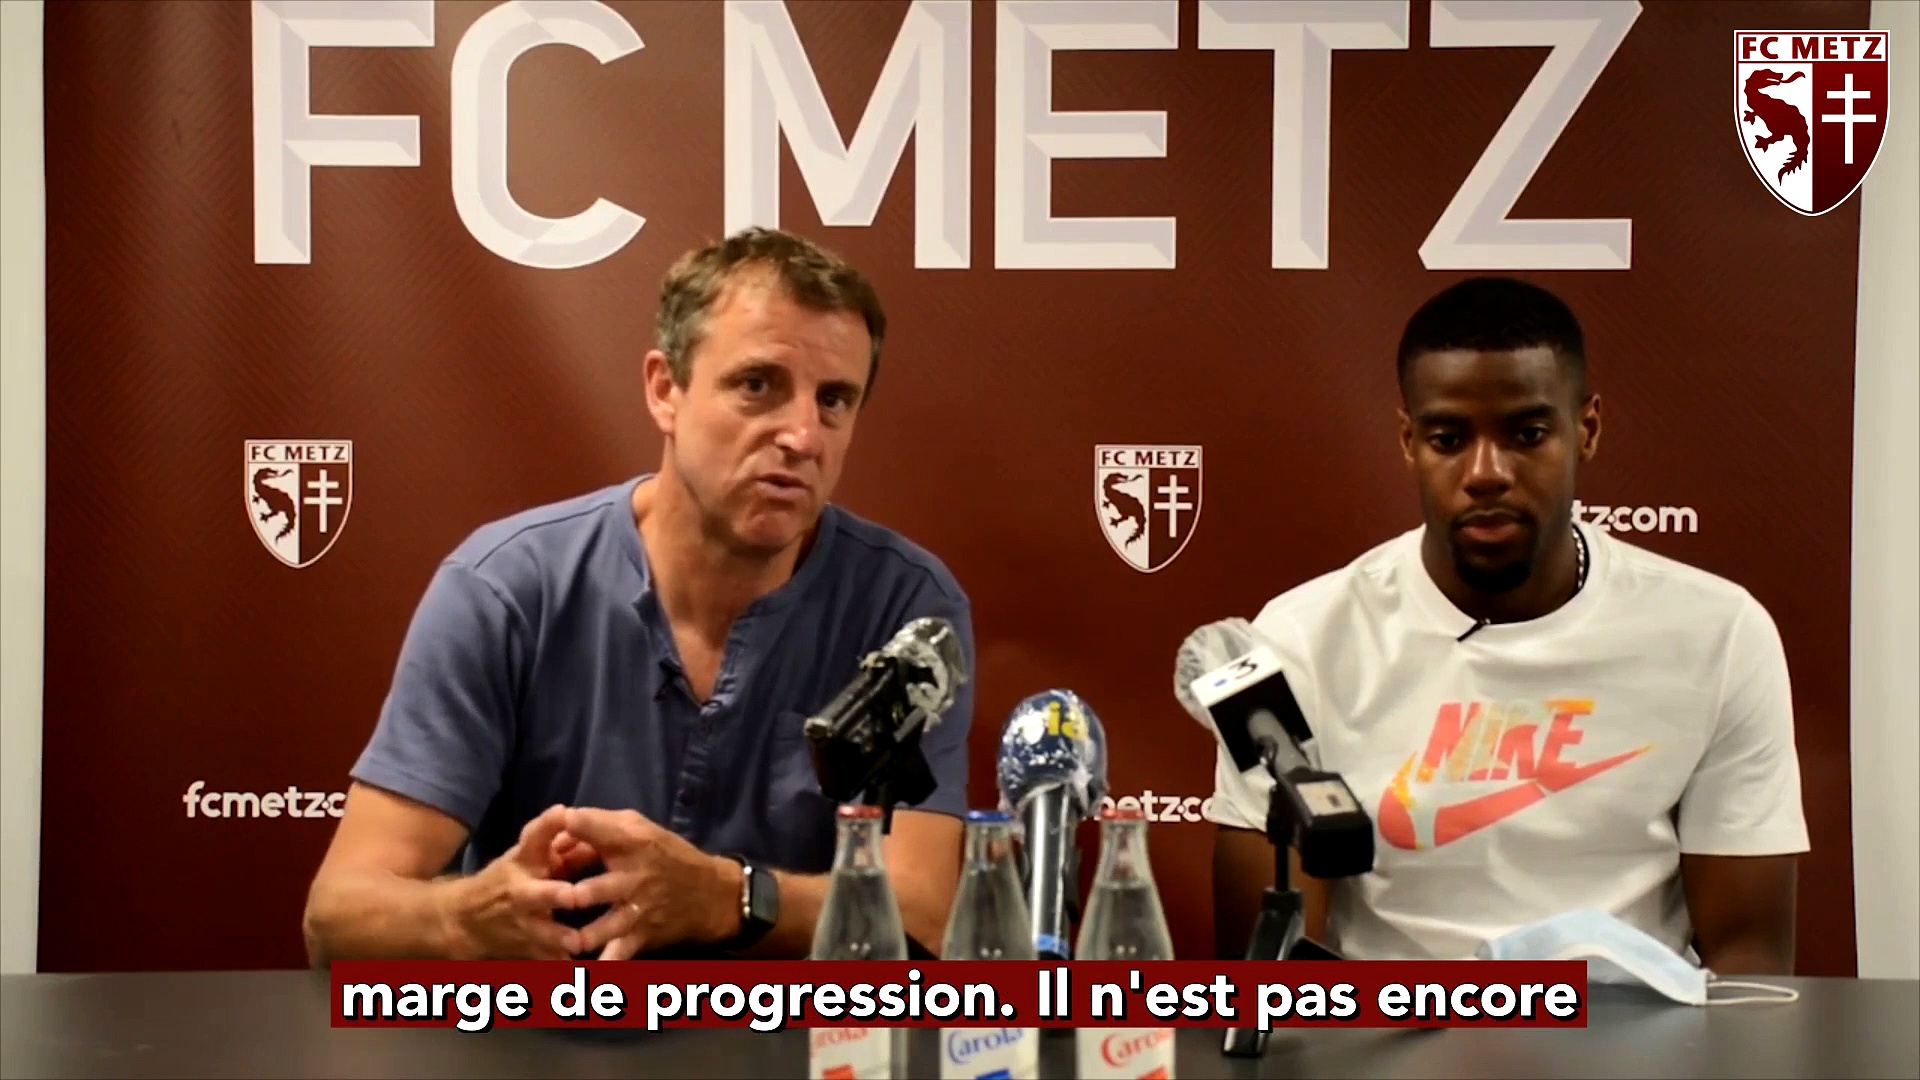 Les Premiers Mots De Warren Tchimbembe En Video Football Addict